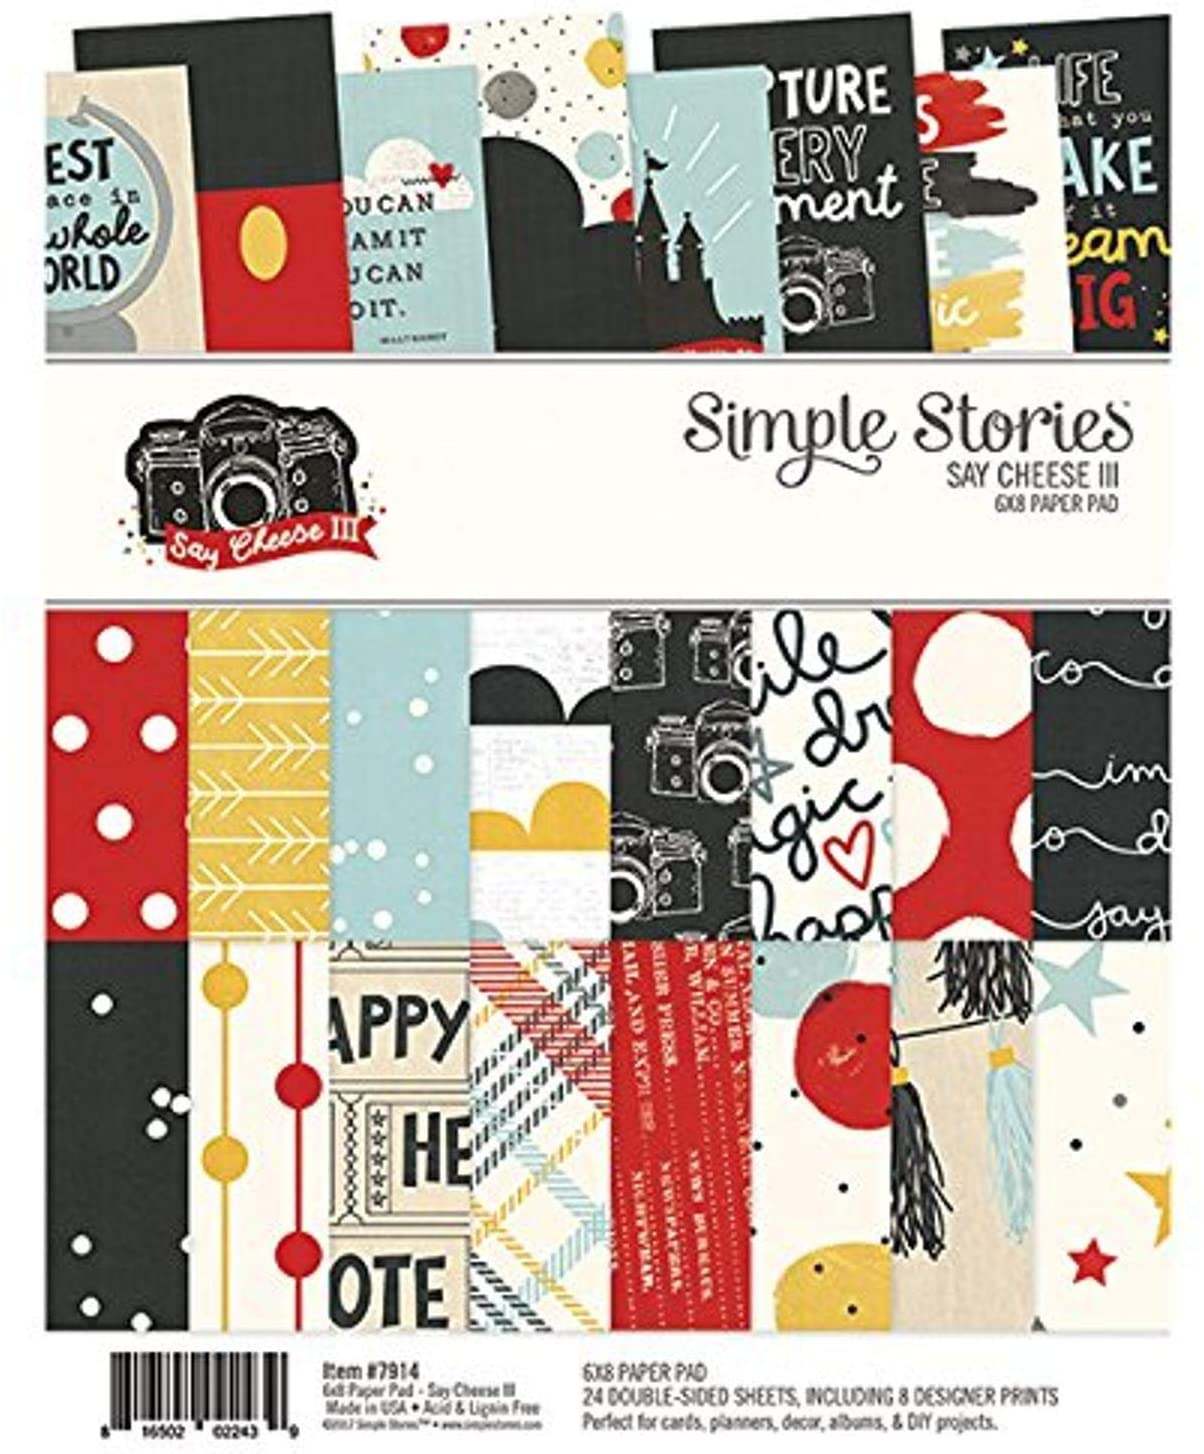 SIMPLE STORIES Say Cheese III 6 x 8 Paper Pad, Multicolor